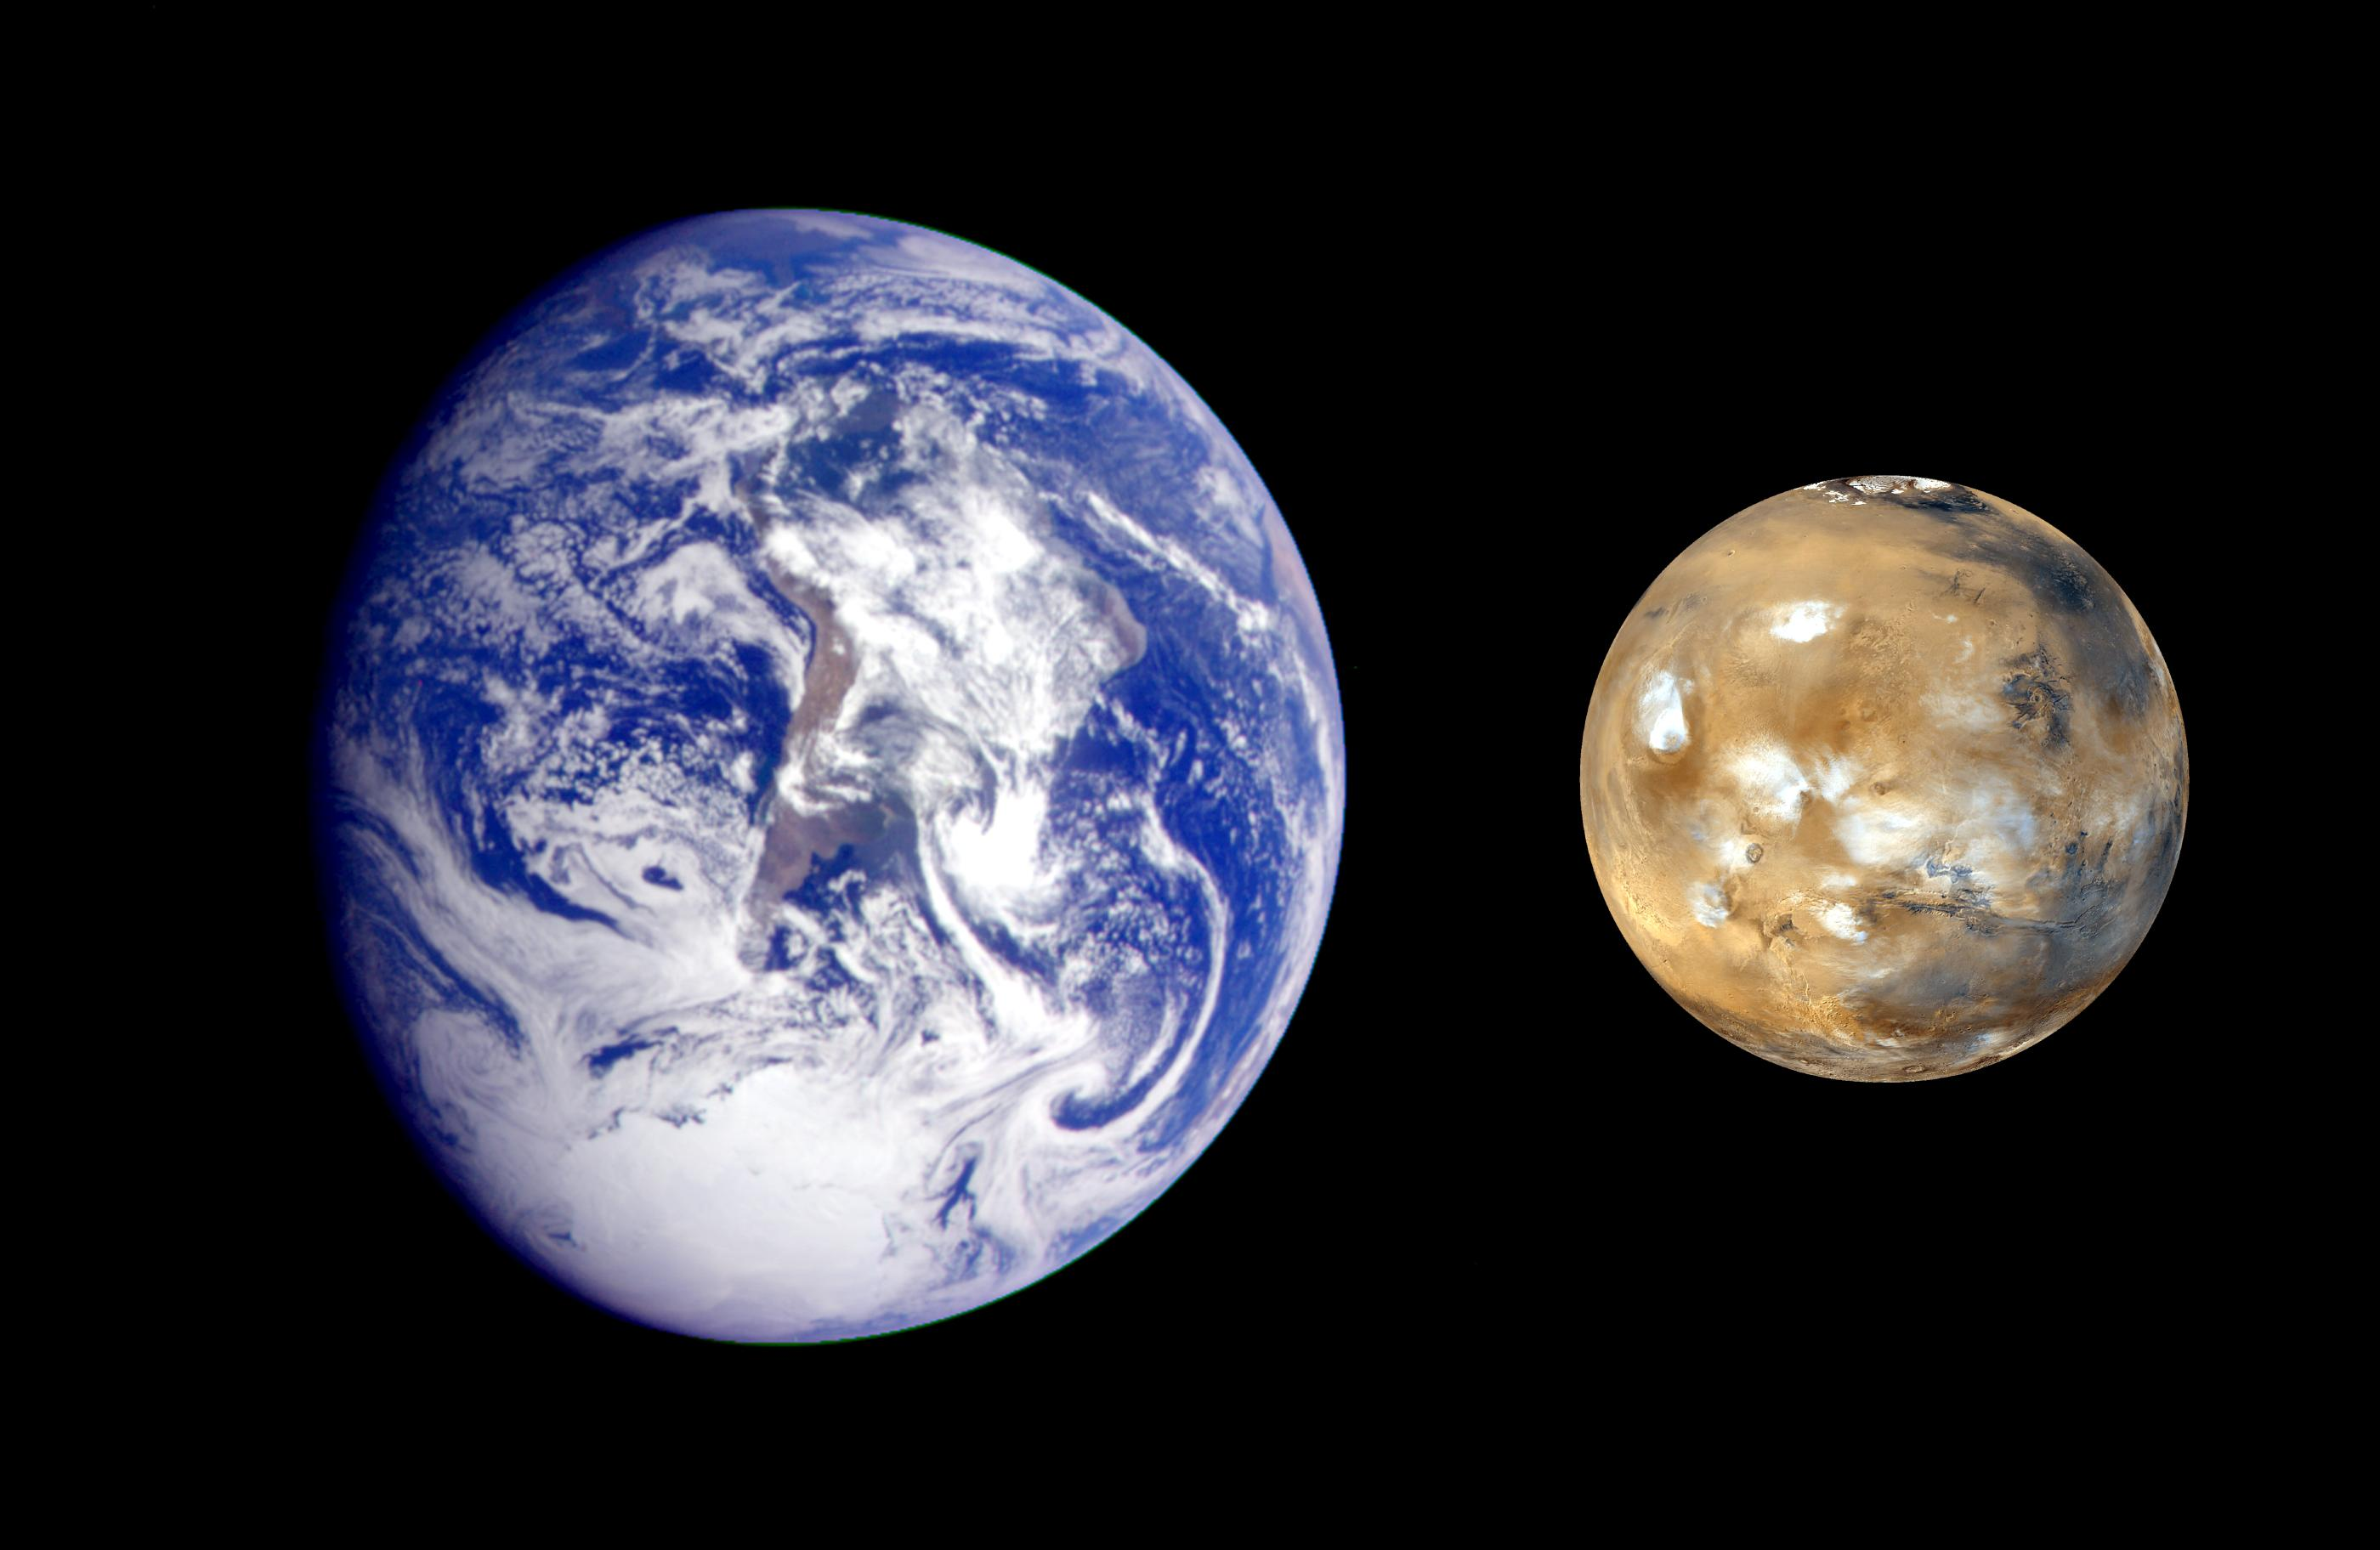 planet jupiter size compared to earth - photo #29